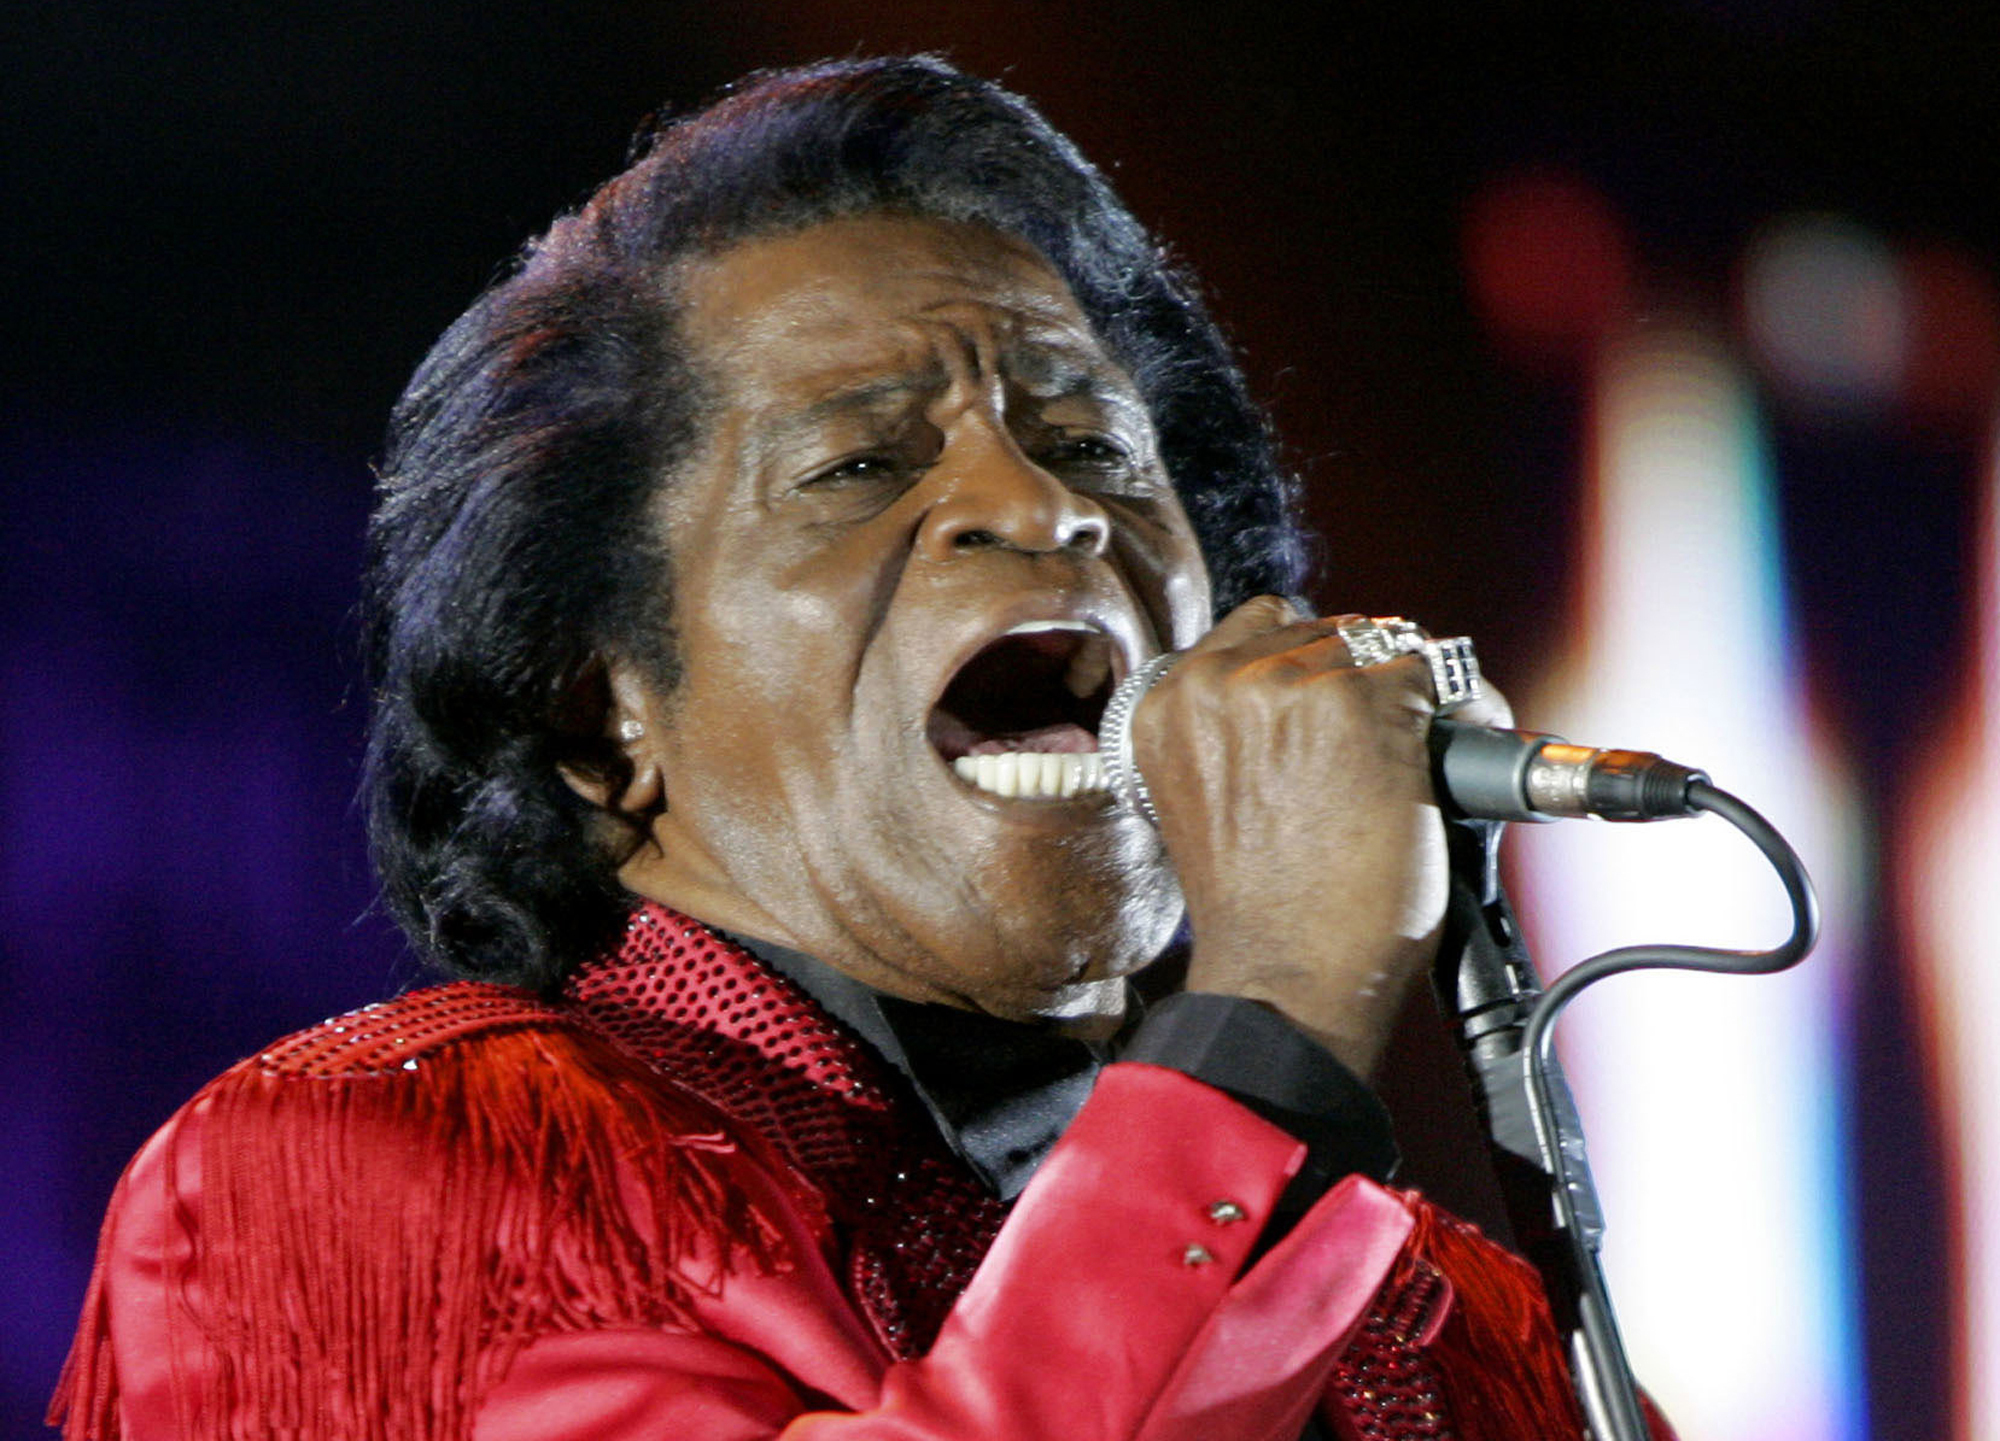 In this file photo, James Brown performs on stage during the Live 8 concert at Murrayfield Stadium in Edinburgh, Scotland on July 6, 2005.